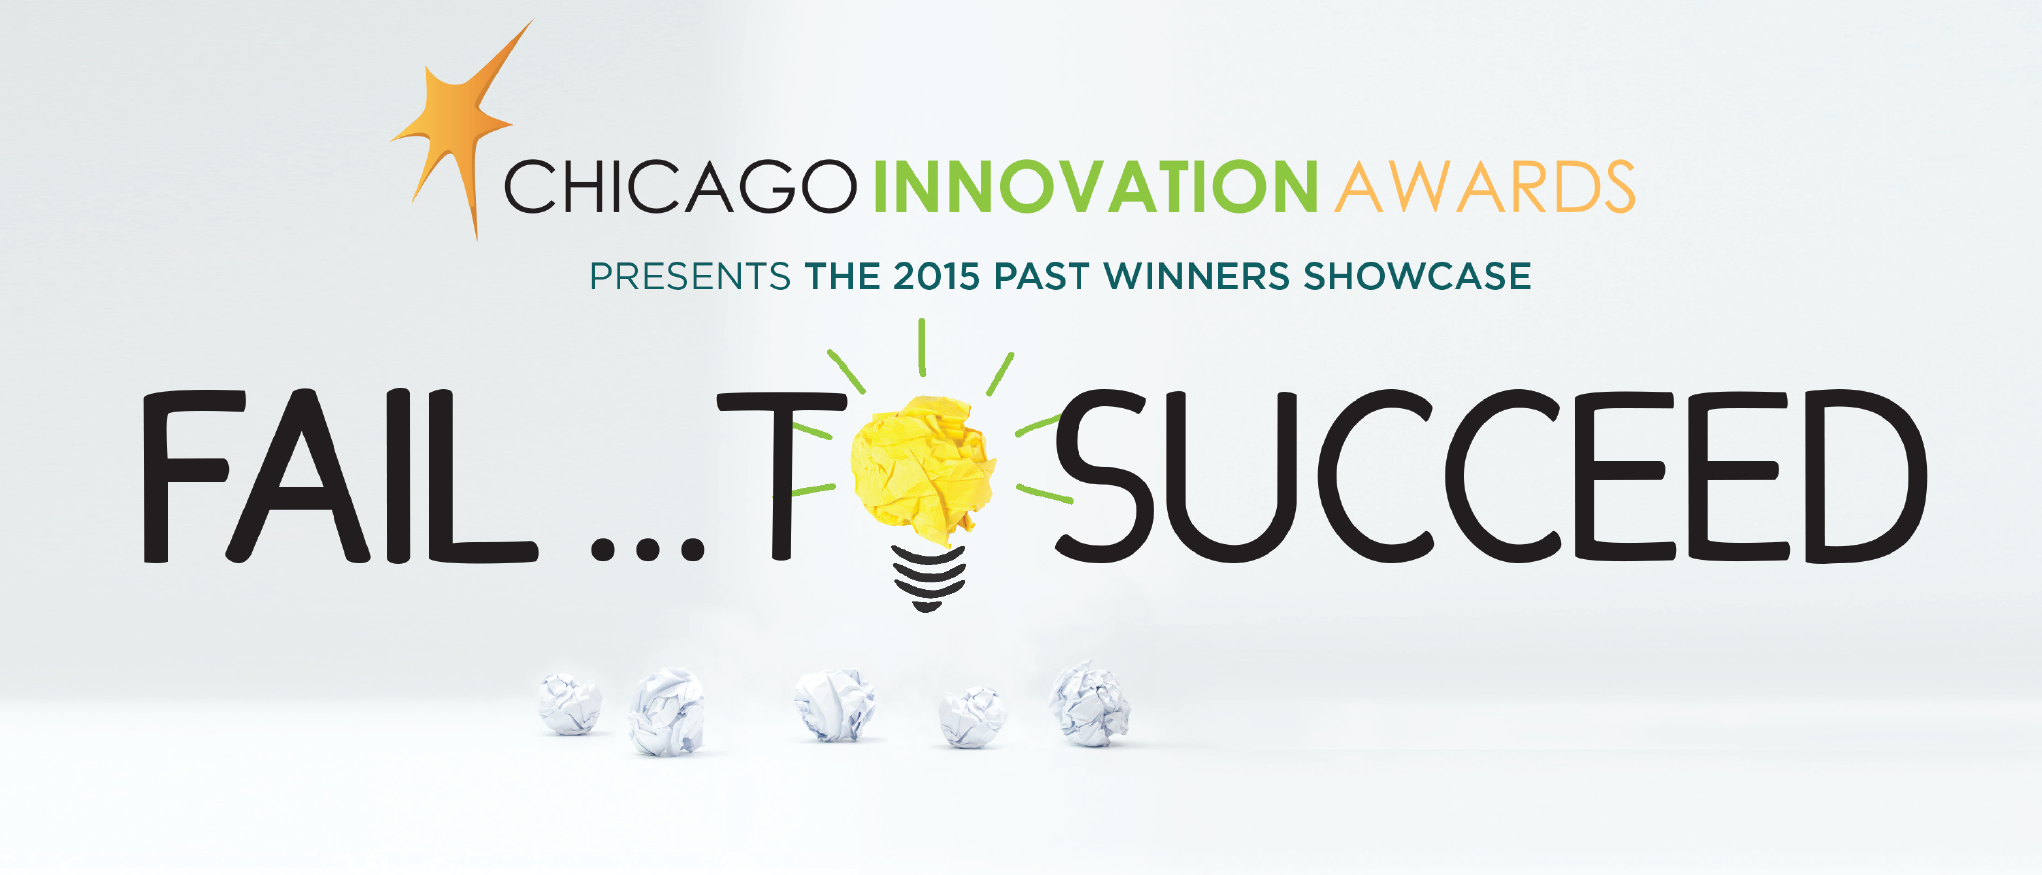 Chicago innovation awards past winners showcase for Innovation consulting firms chicago